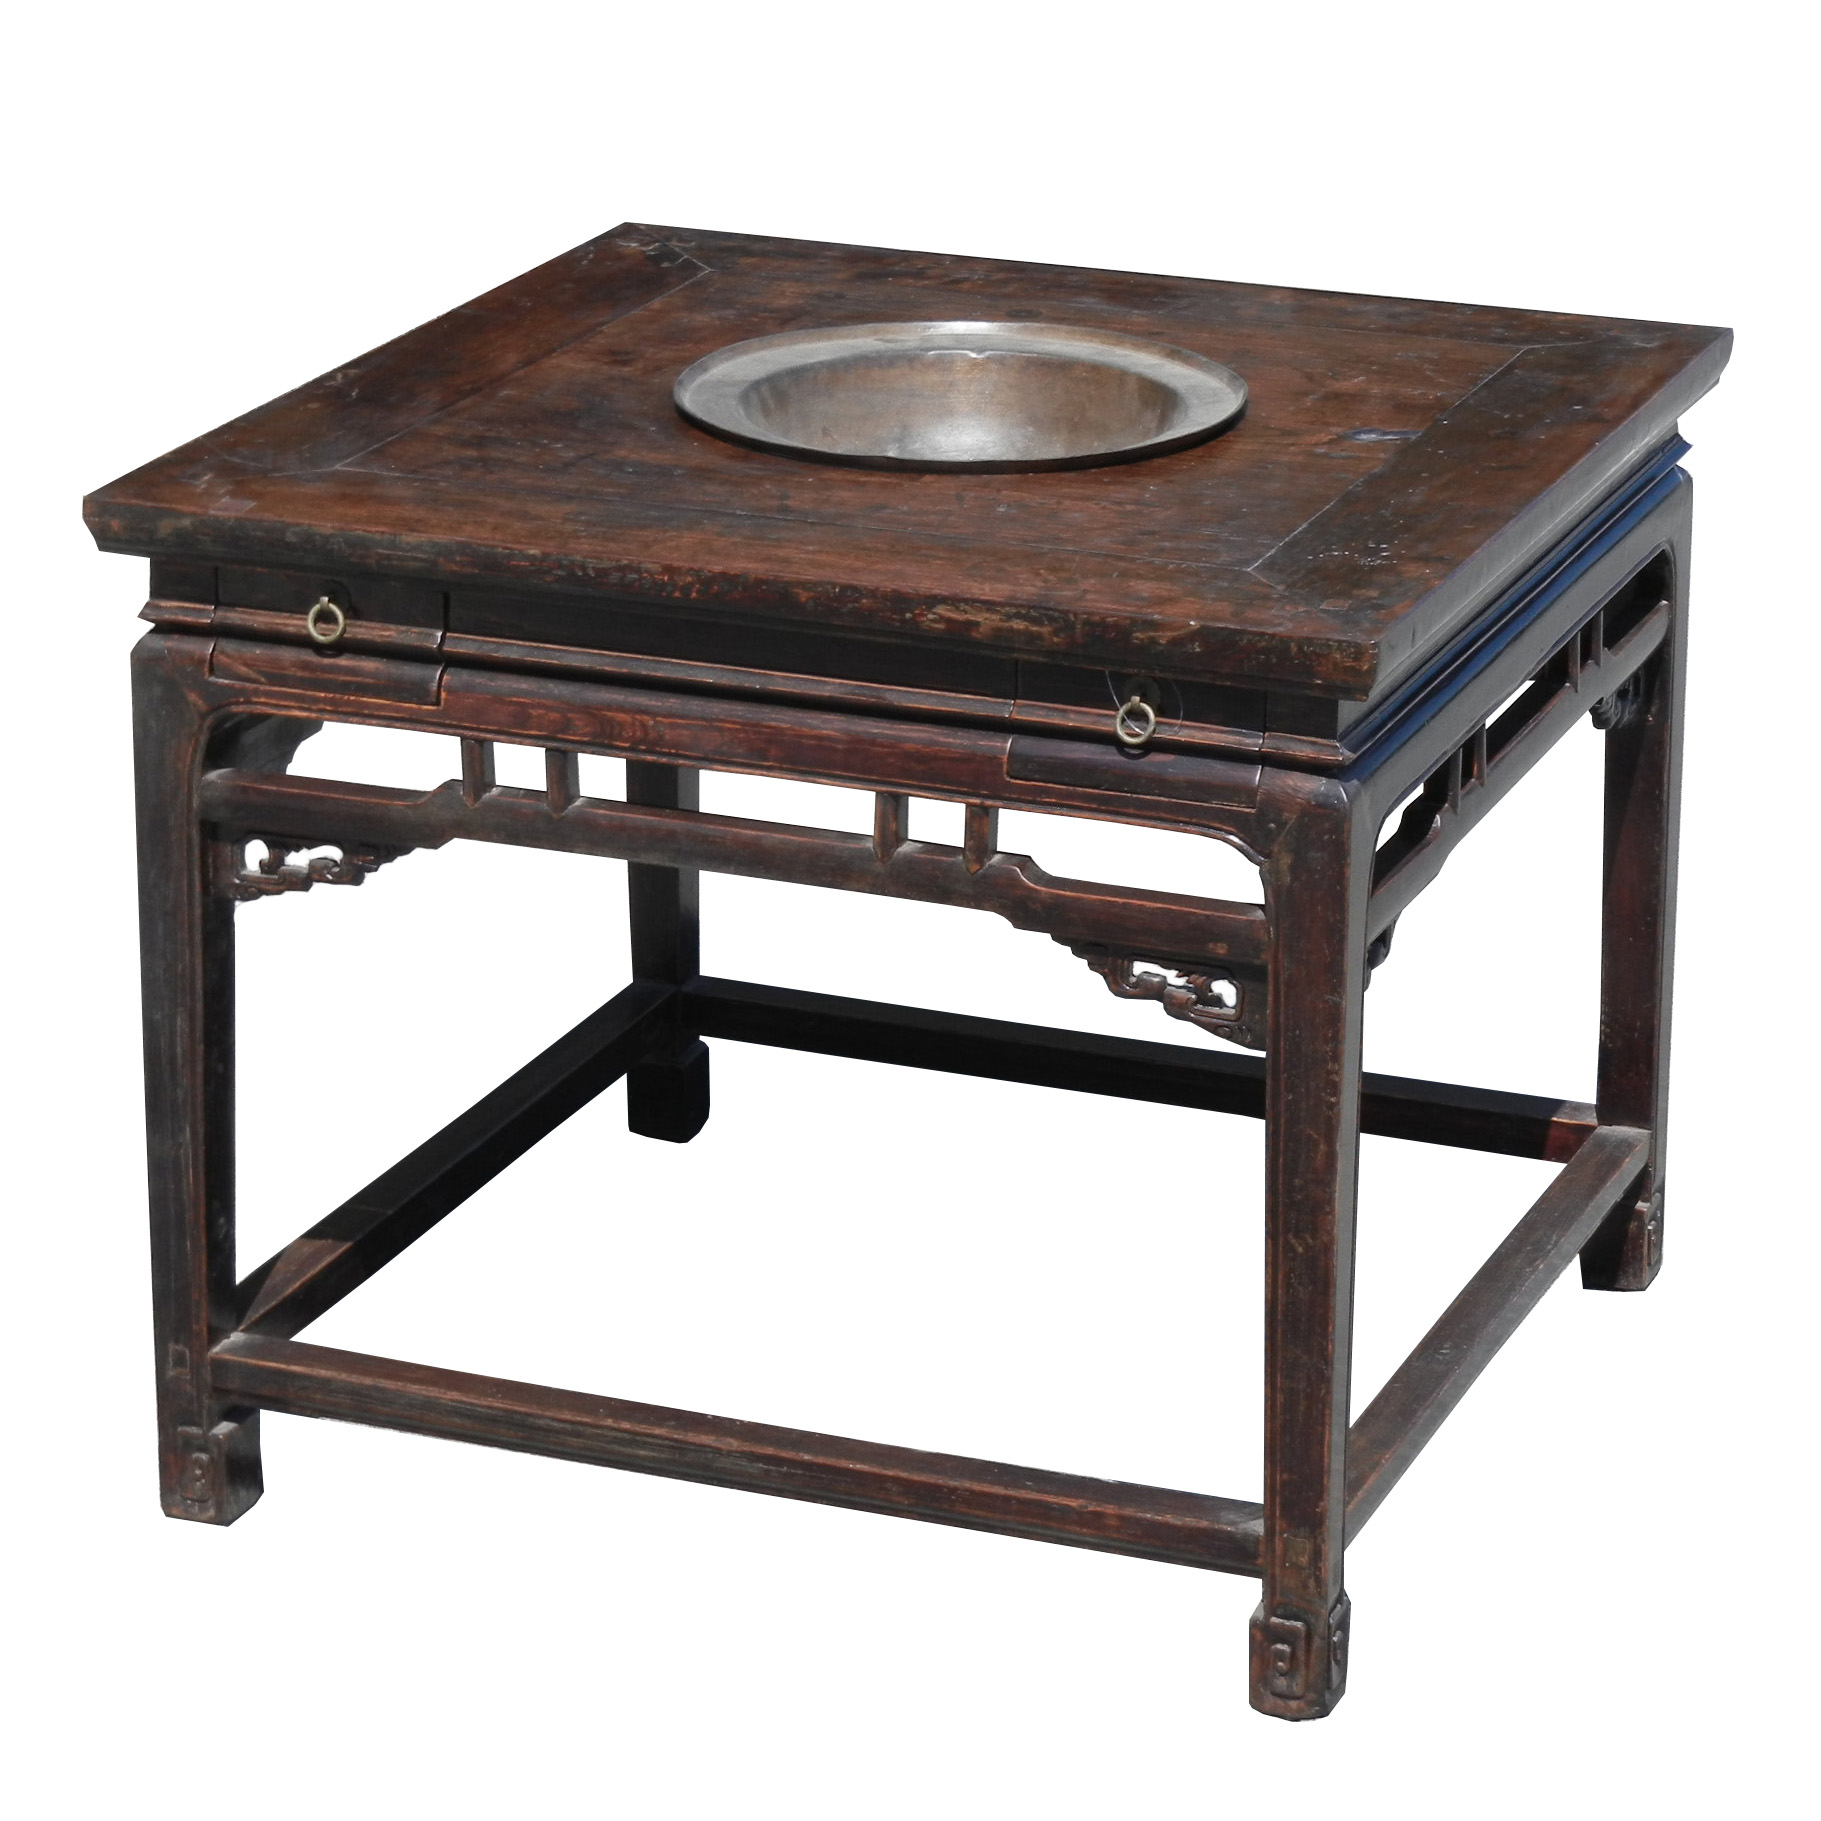 Shen's Gallery | Chinese Antiques | Side Table & Square Table | Bay Area Throughout Layered Wood Small Square Console Tables (View 6 of 30)